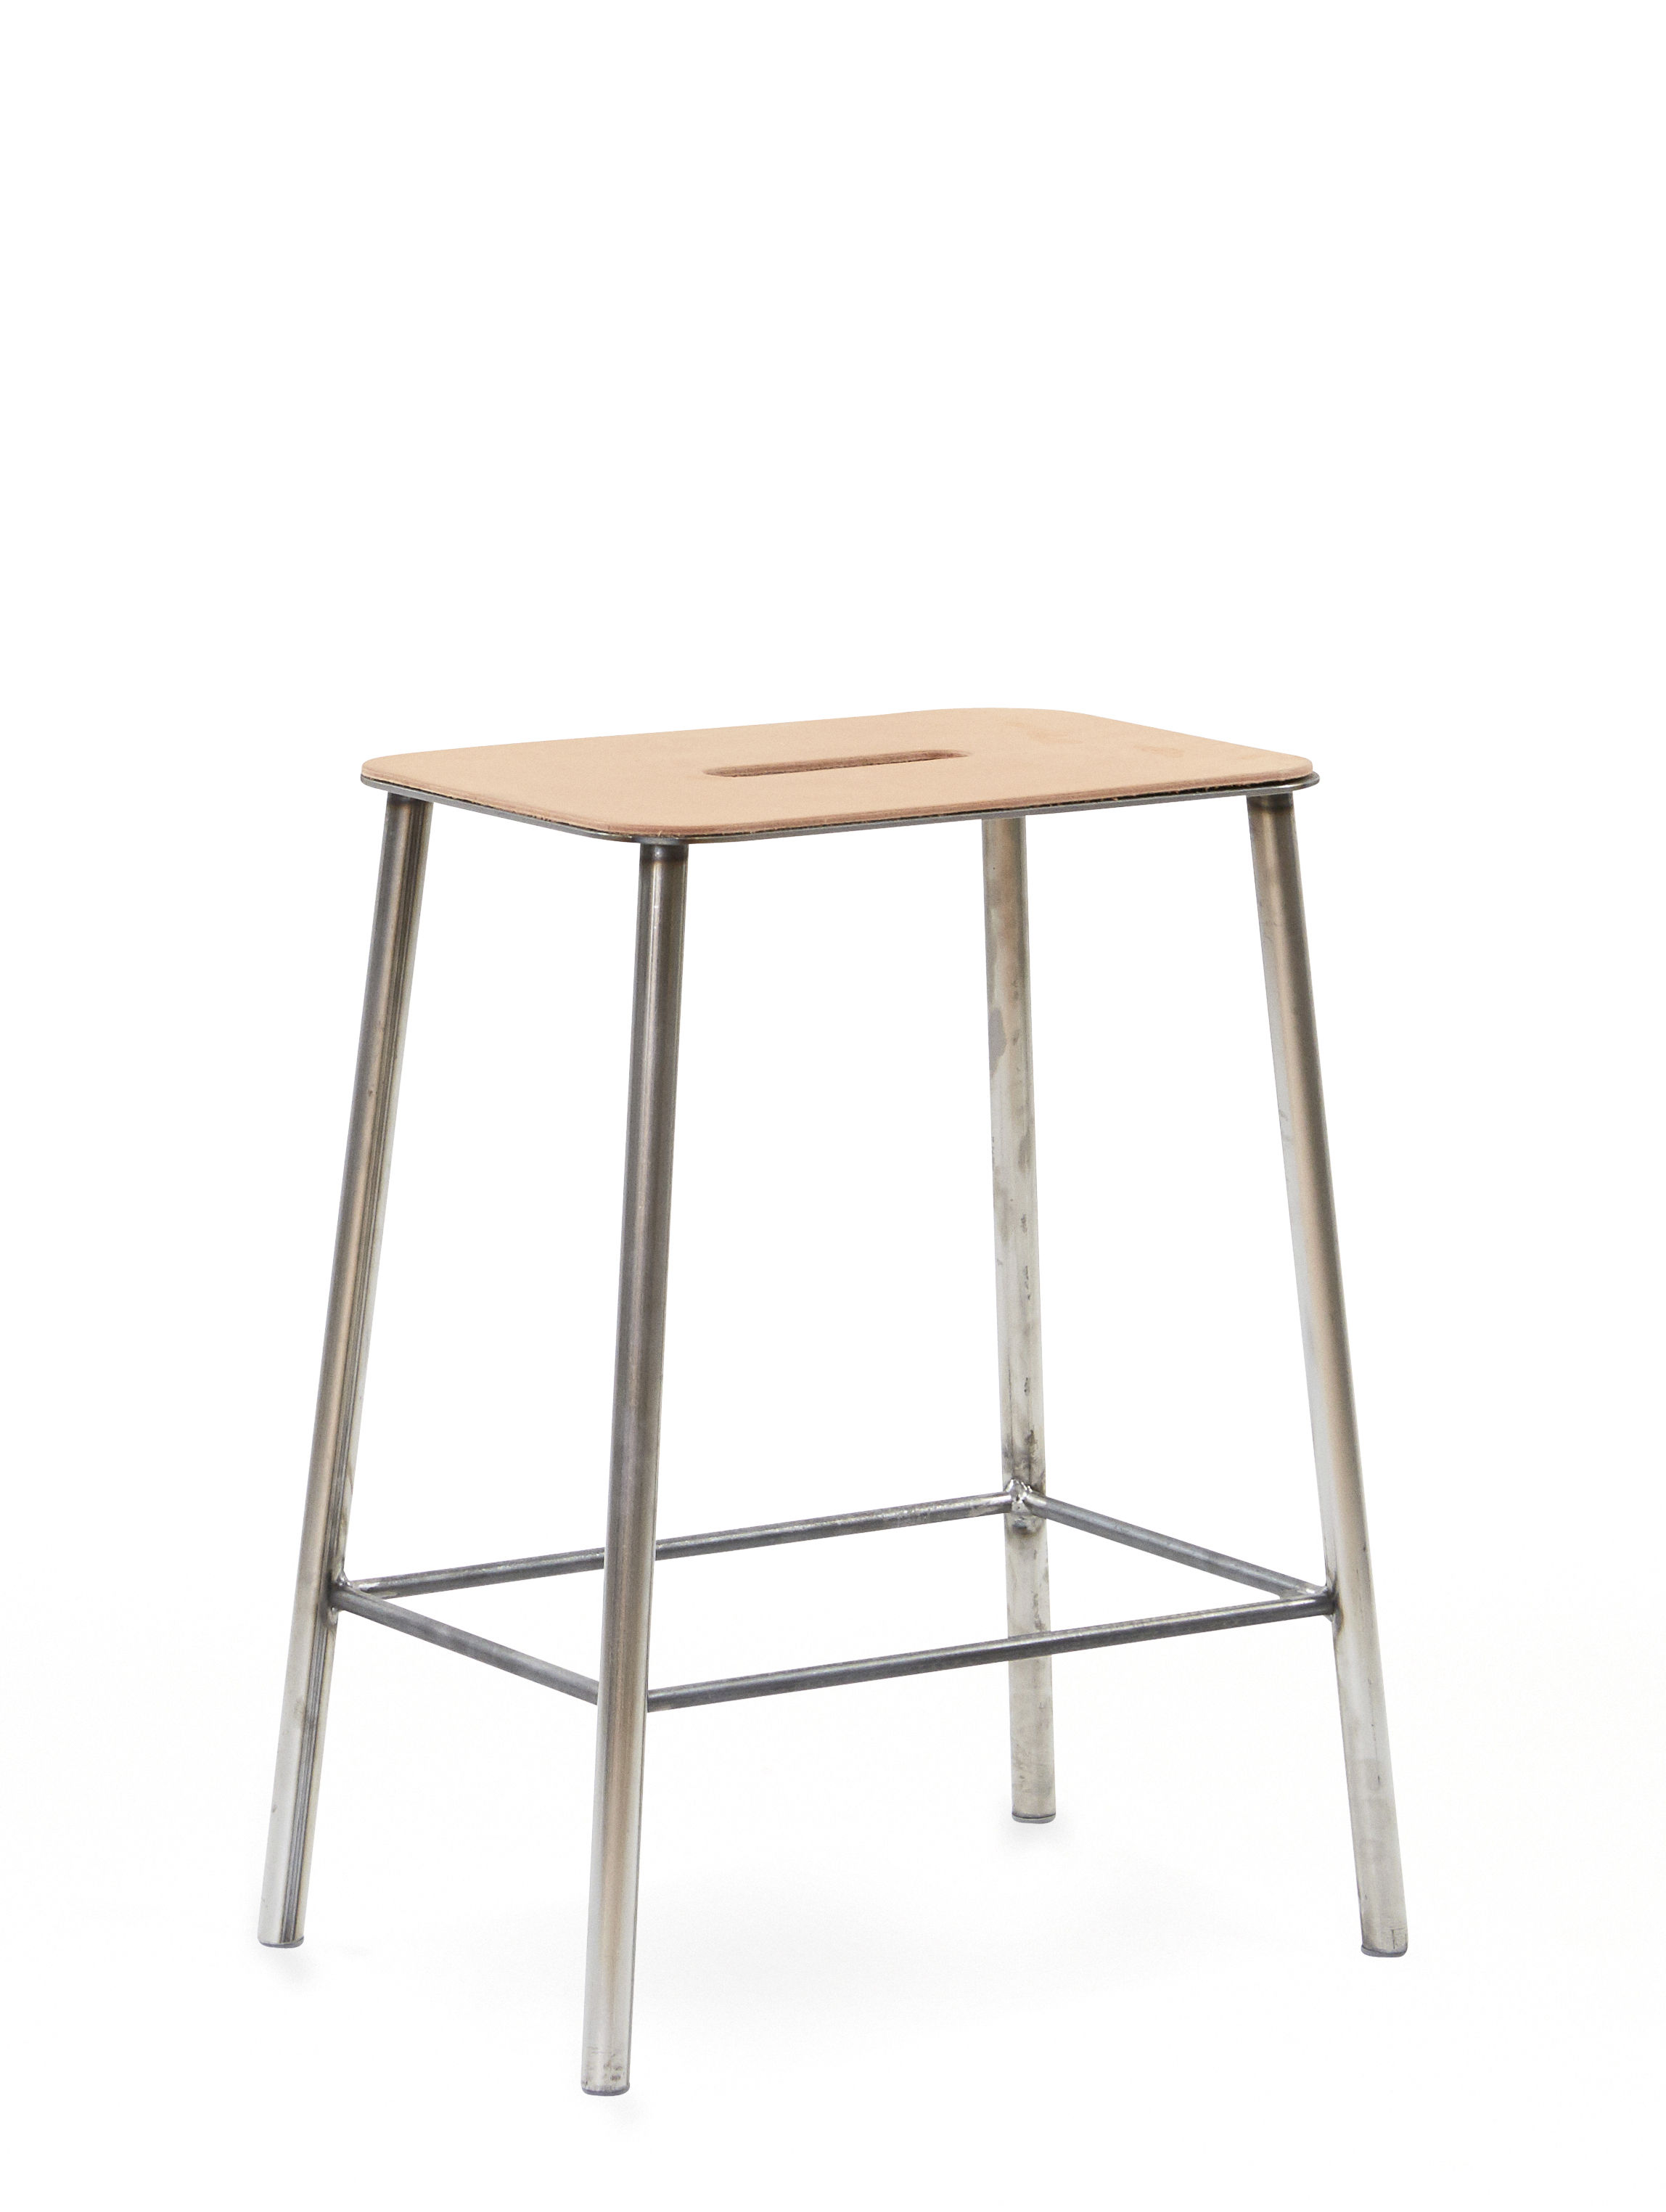 Furniture - Stools - Adam Cuir Stool - / H 50 cm by Frama  - H 50 cm / Beige leather & steel - Leather, Steel